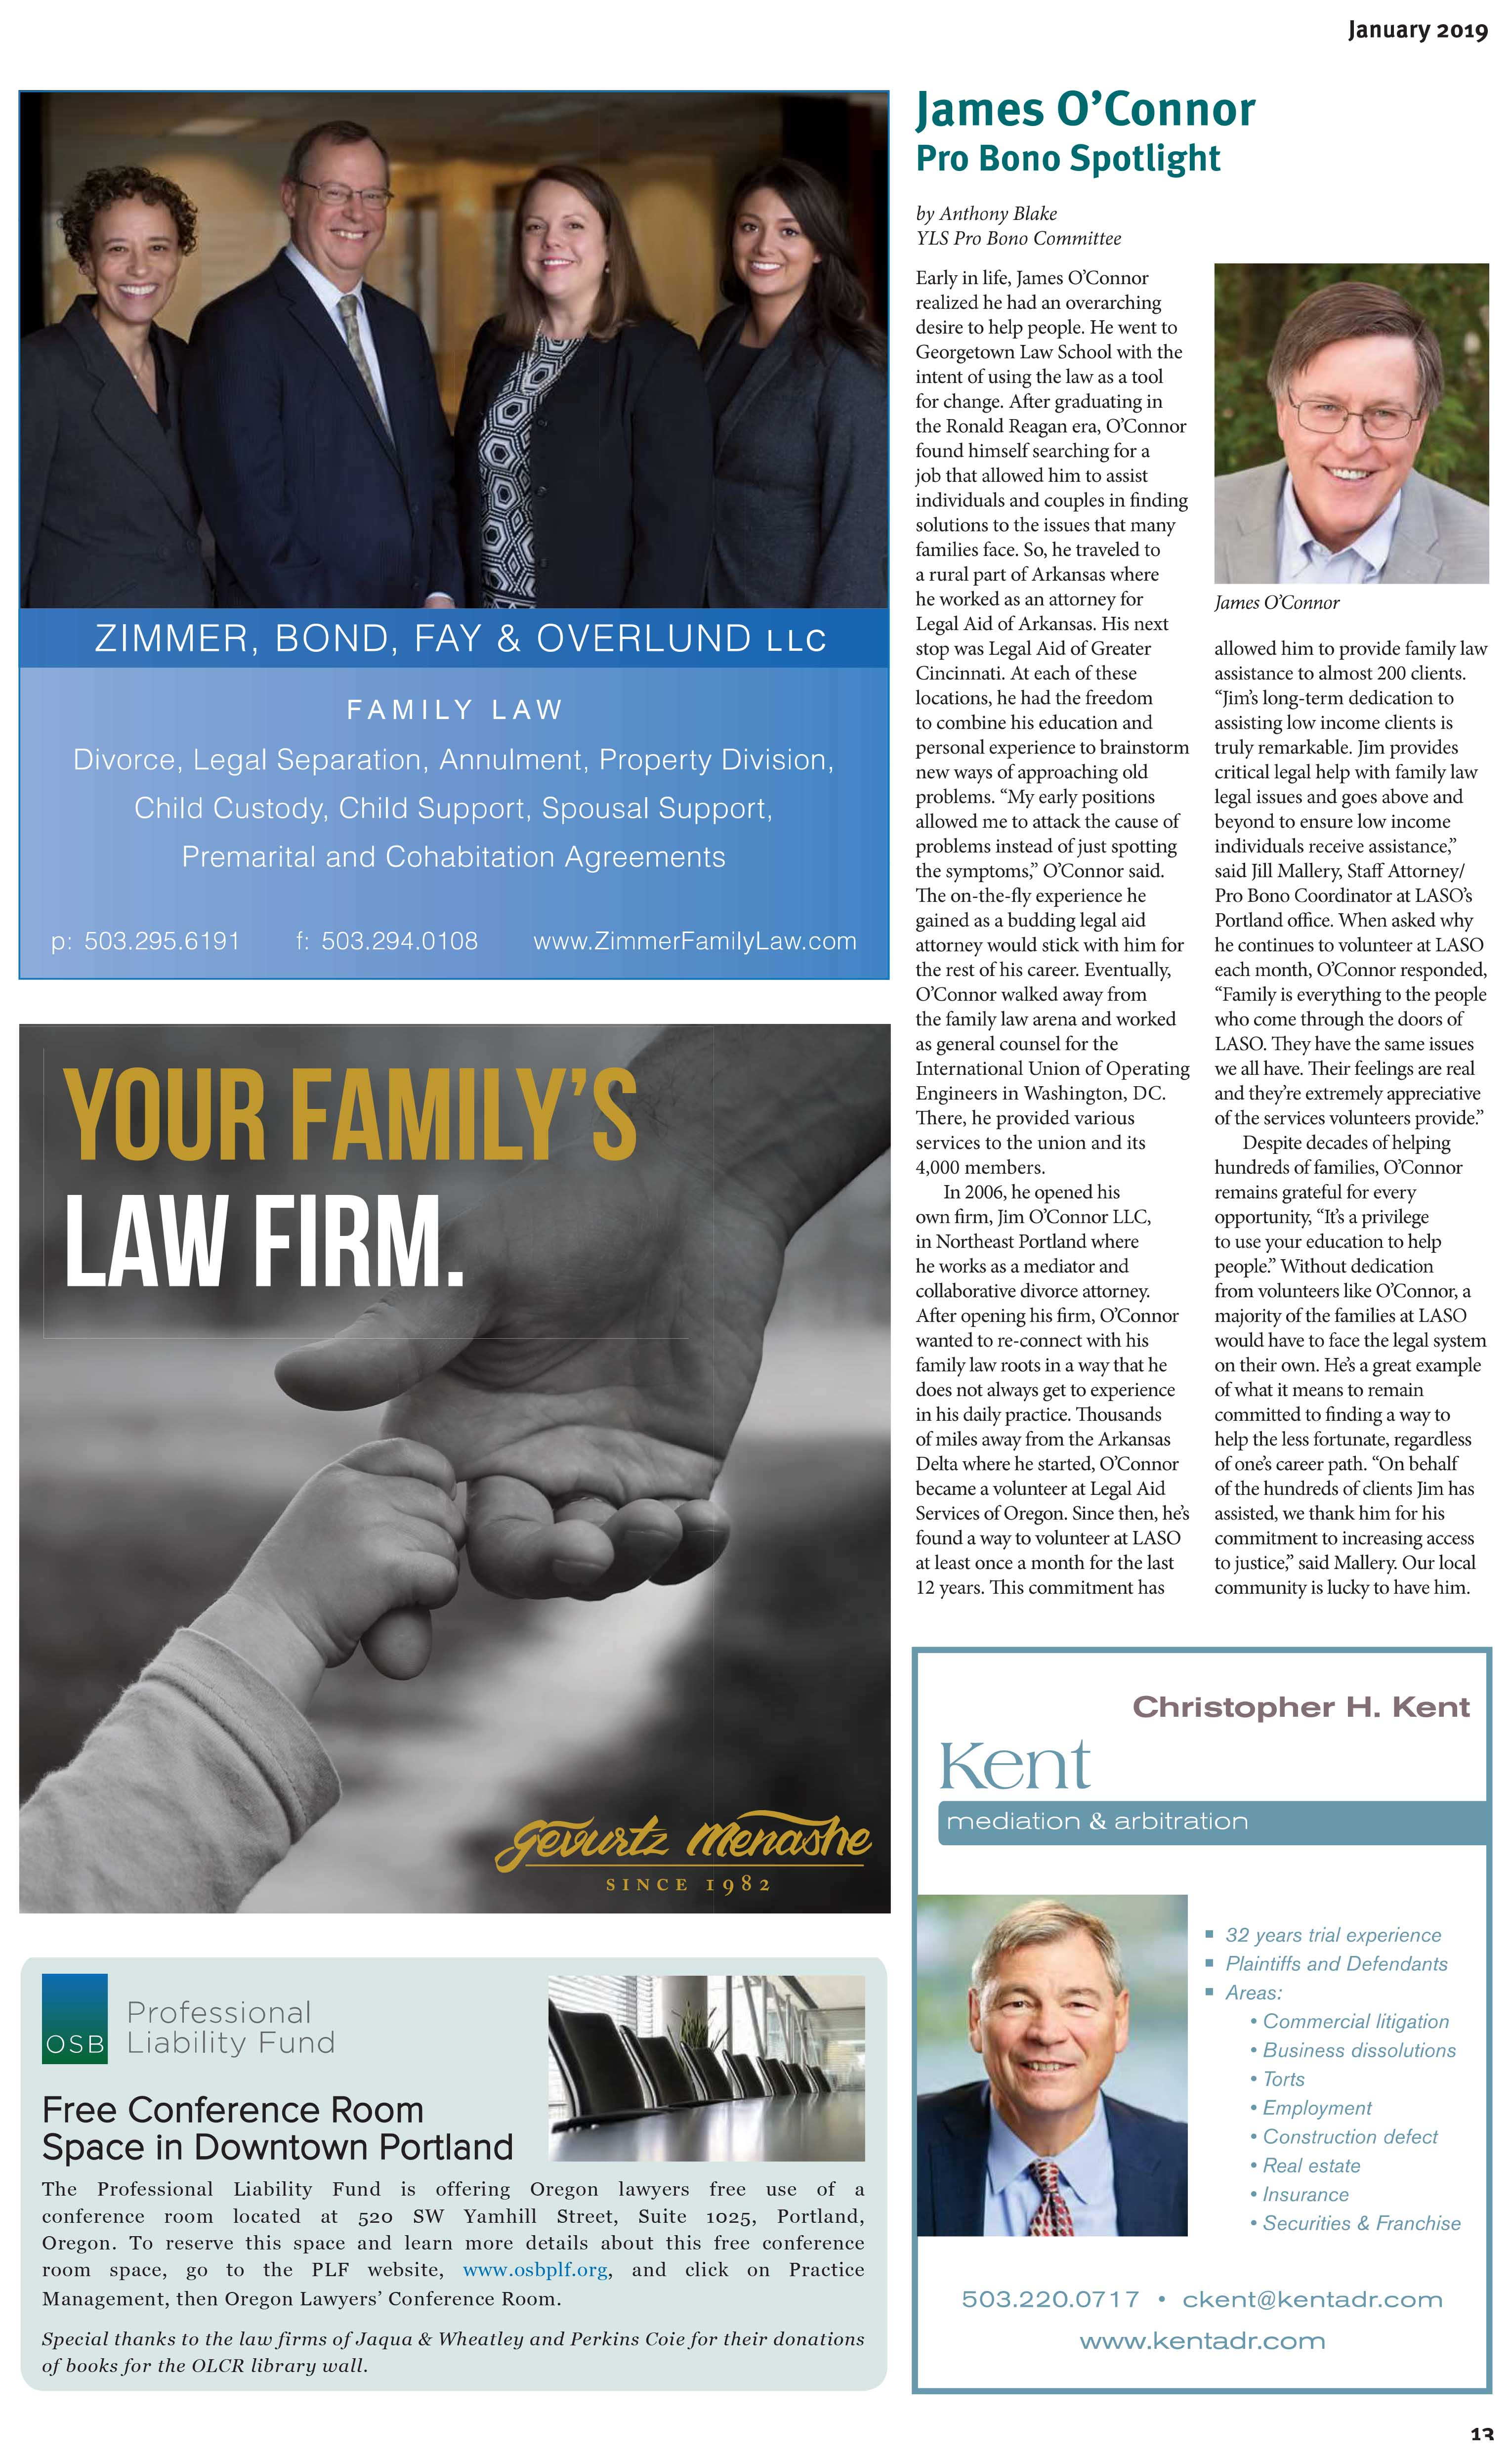 article from Pro Bono Spotlight publication